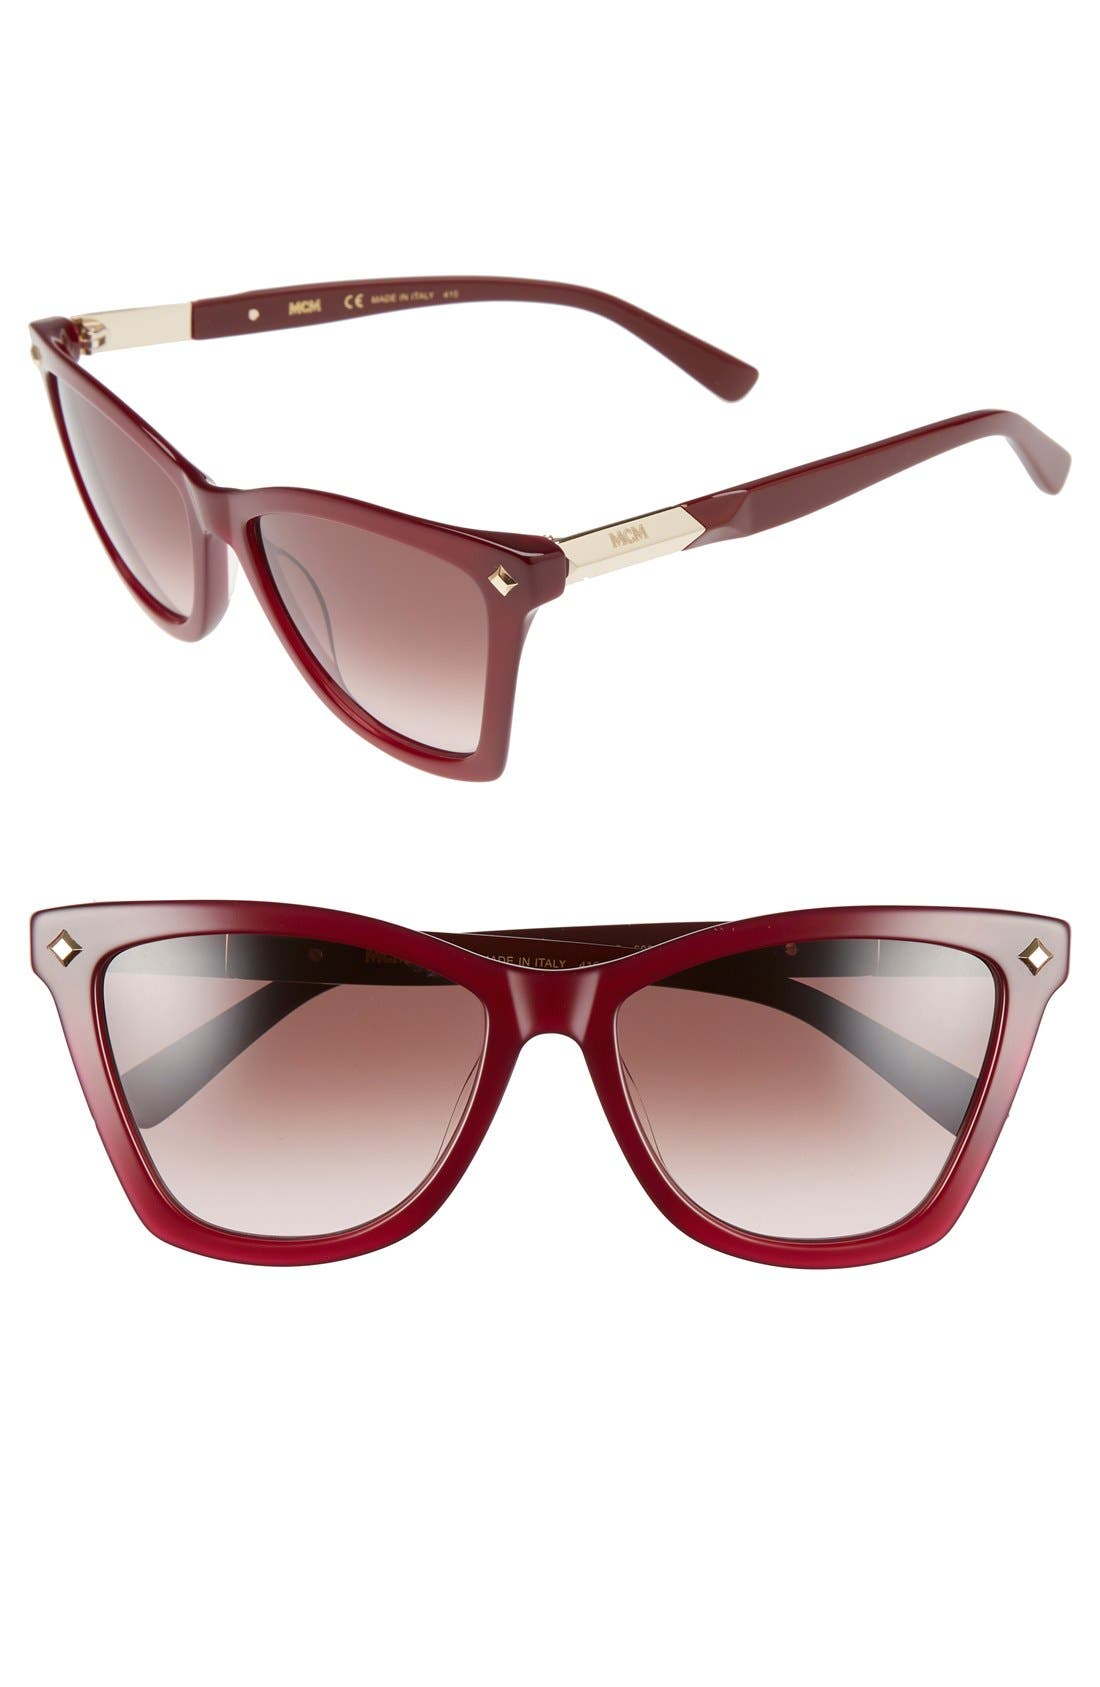 MCM 57mm Retro Sunglasses